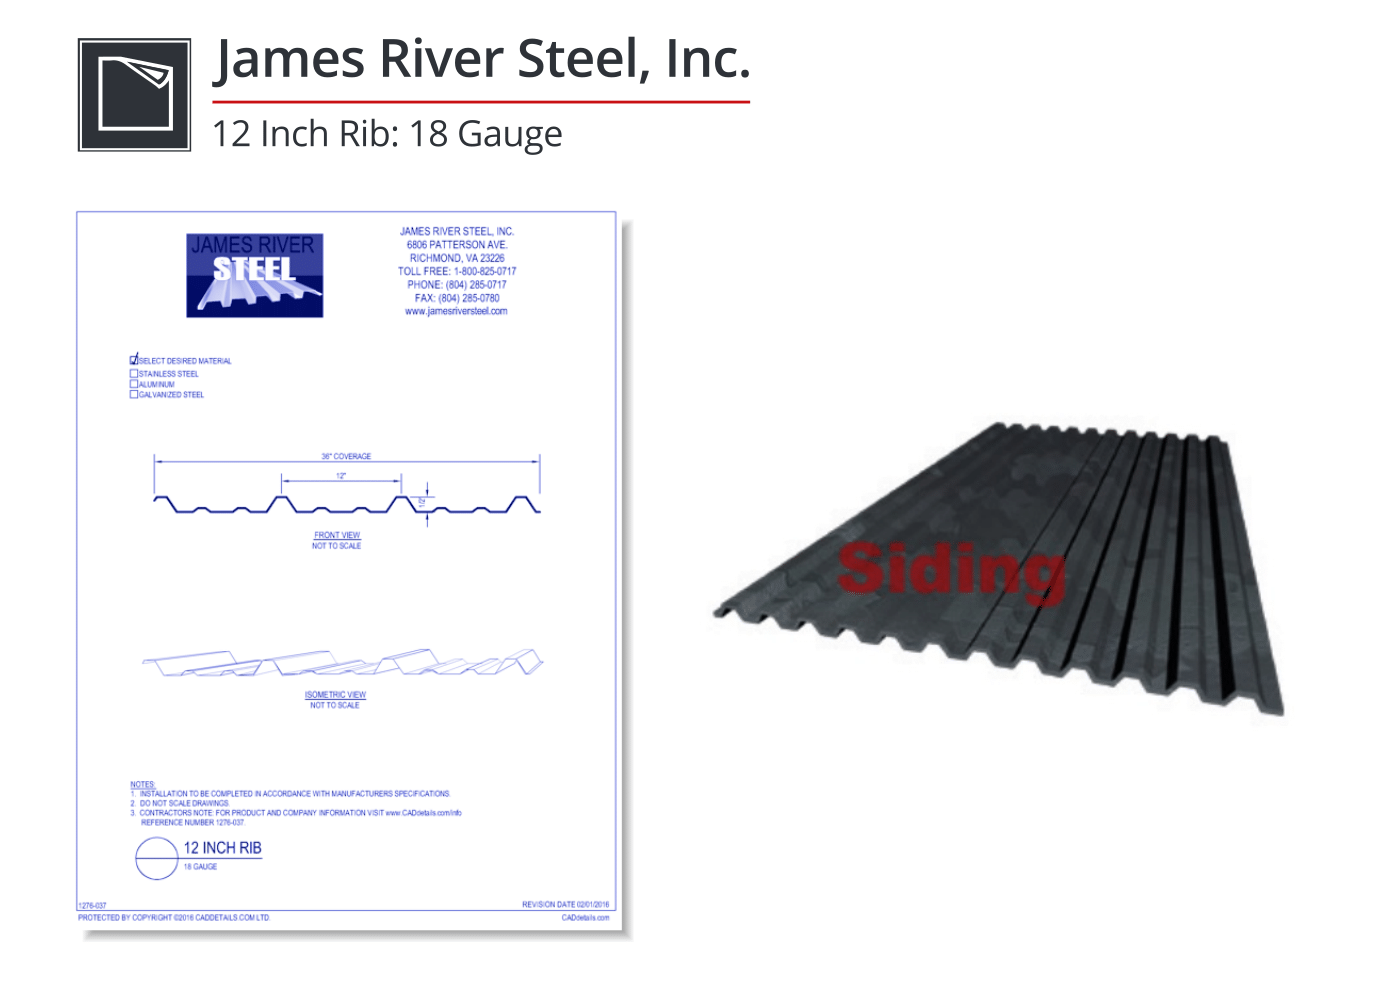 James-River-Steel-Inc-12inch-Siding-CADdrawing.png